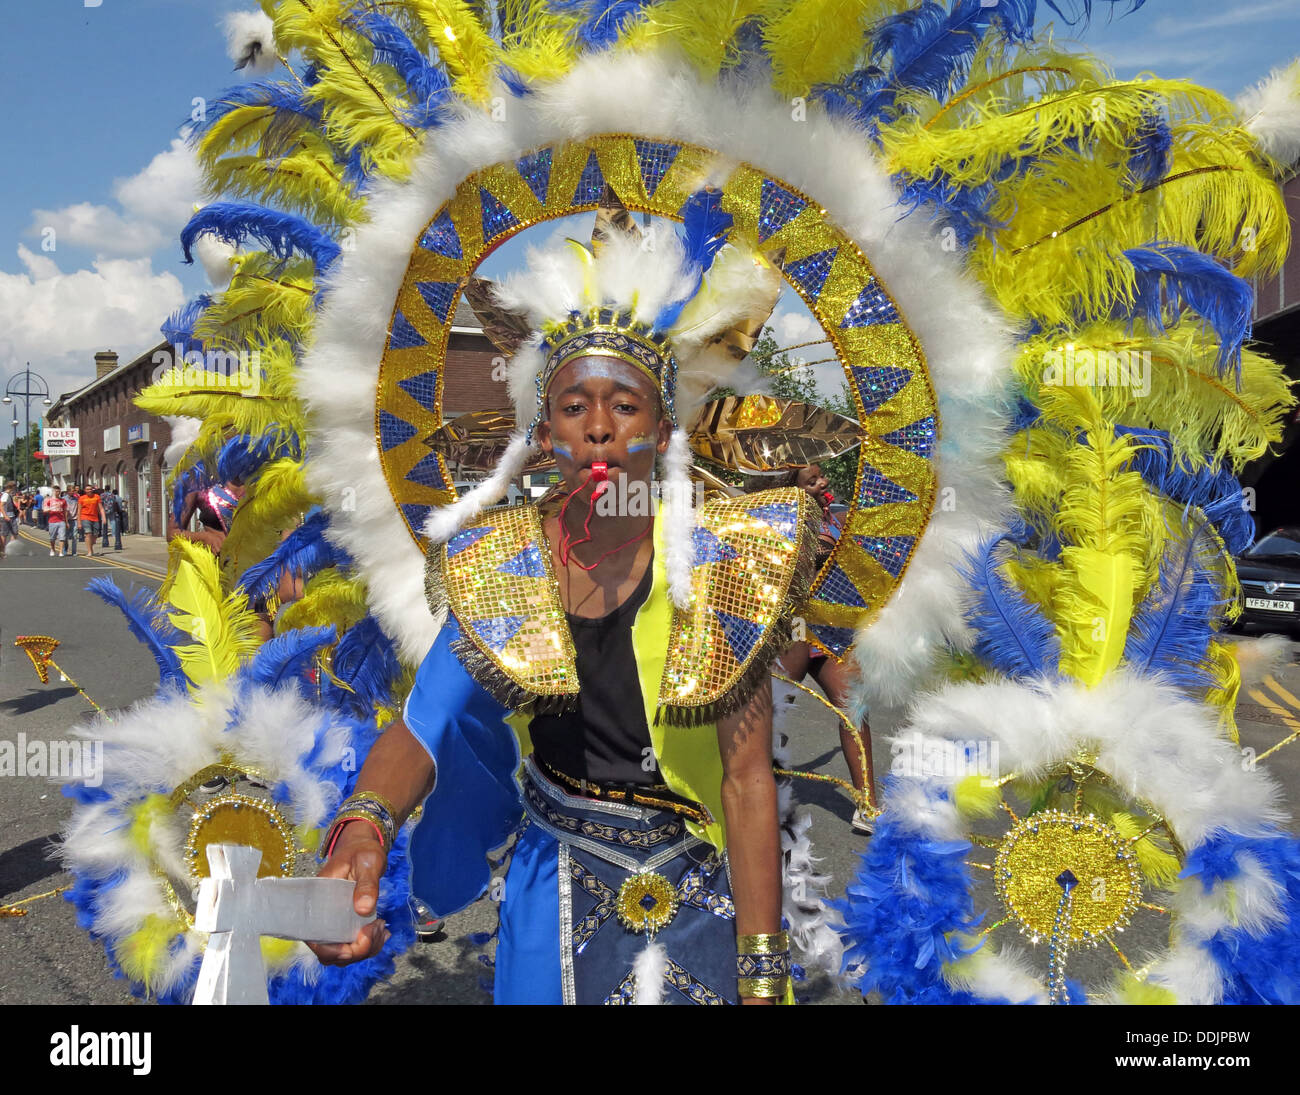 Costumed dancer in blue yellow from Huddersfield Carnival 2013 African Caribbean parade street party - Stock Image